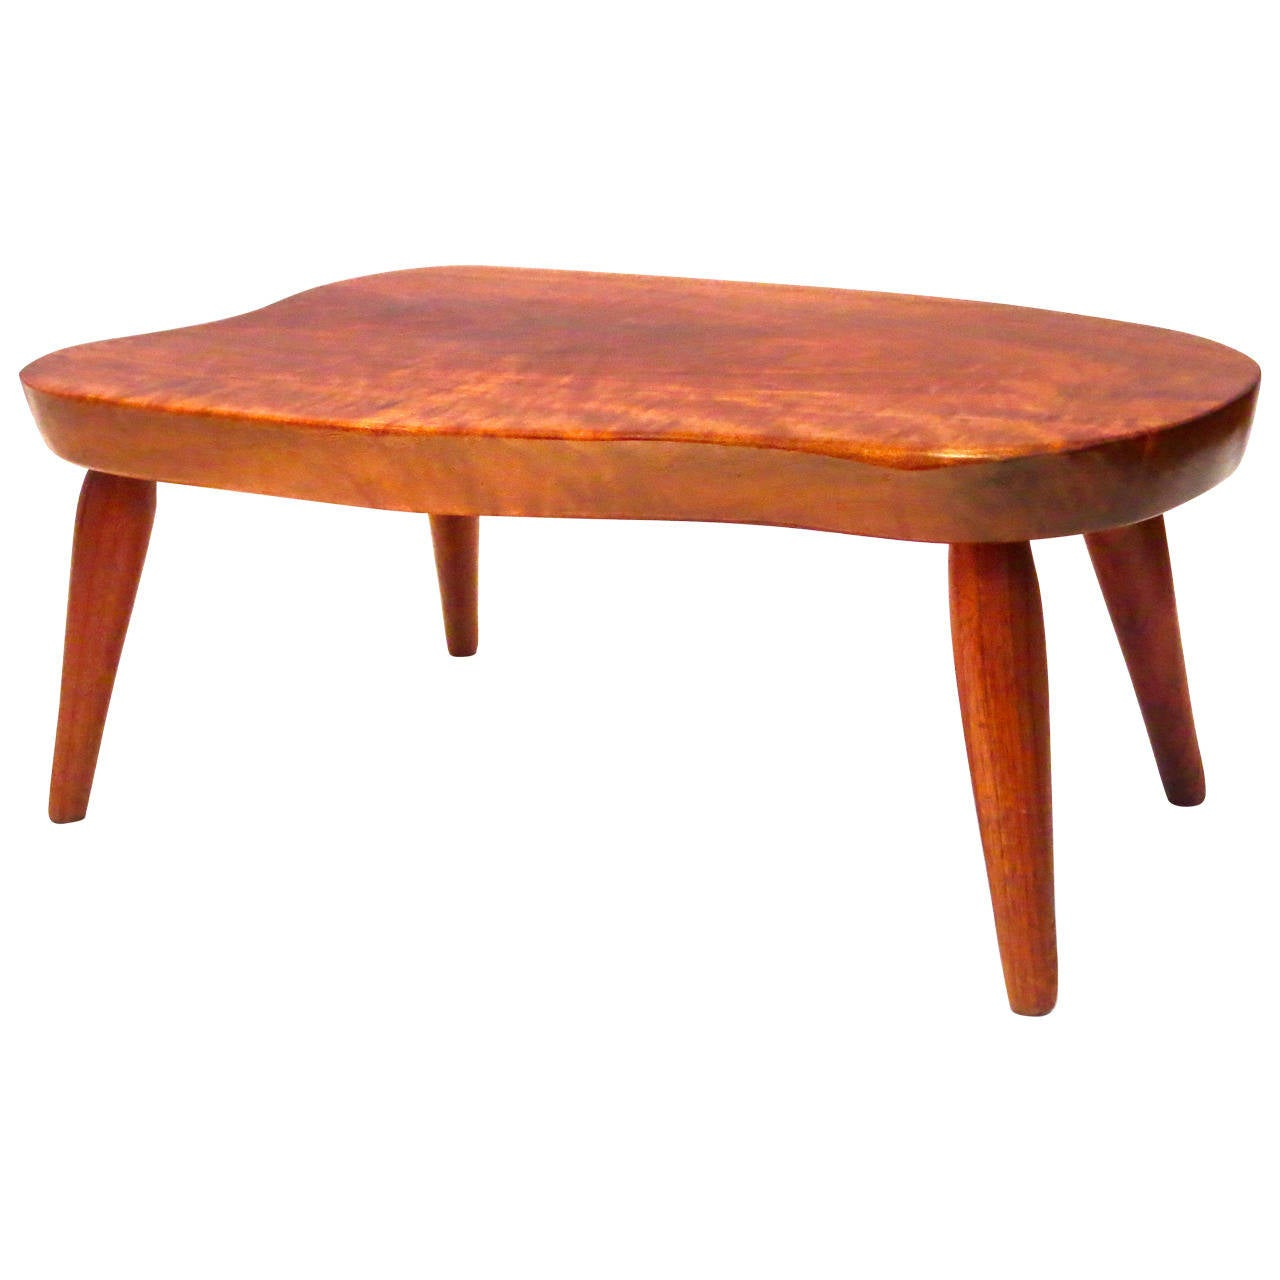 1960s American Modern Free Form Low Cocktail Table In Solid Walnut At 1stdibs